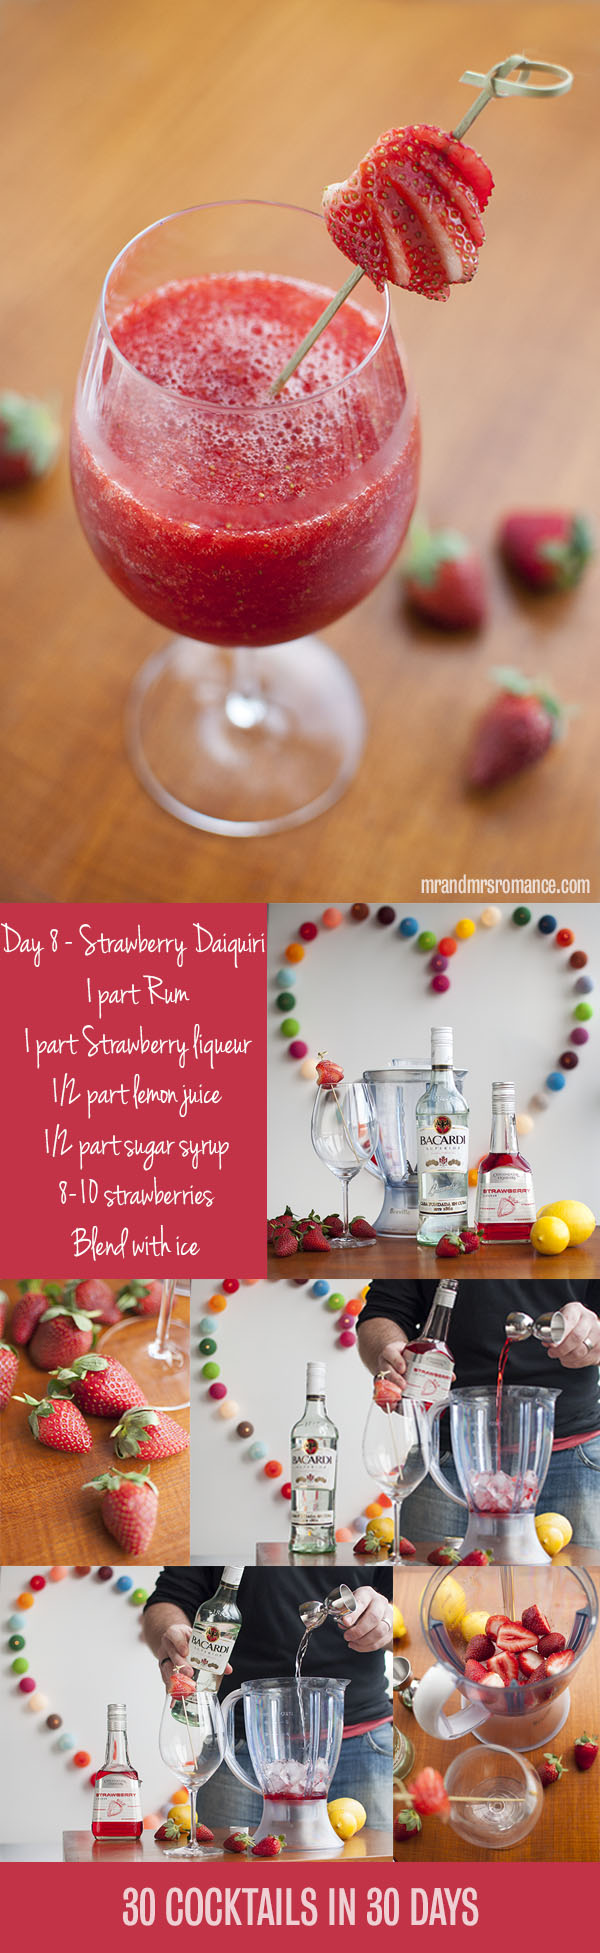 Mr and Mrs Romance - Day 8 - Strawberry Daiquiri Cocktail Recipe